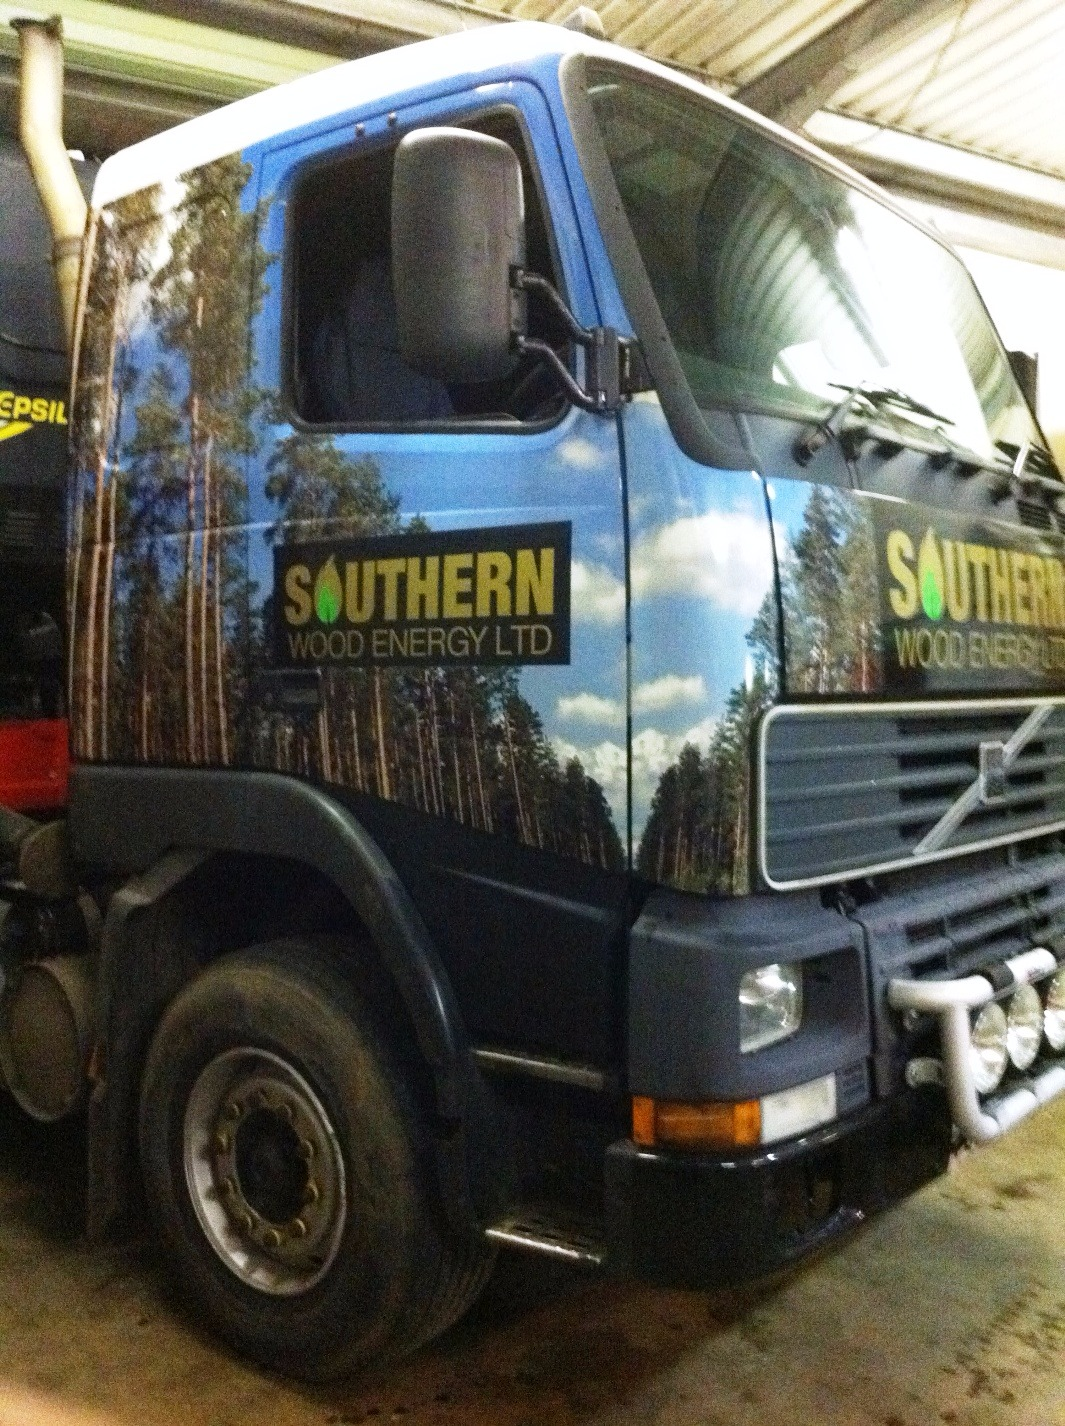 Southern Wood Energy